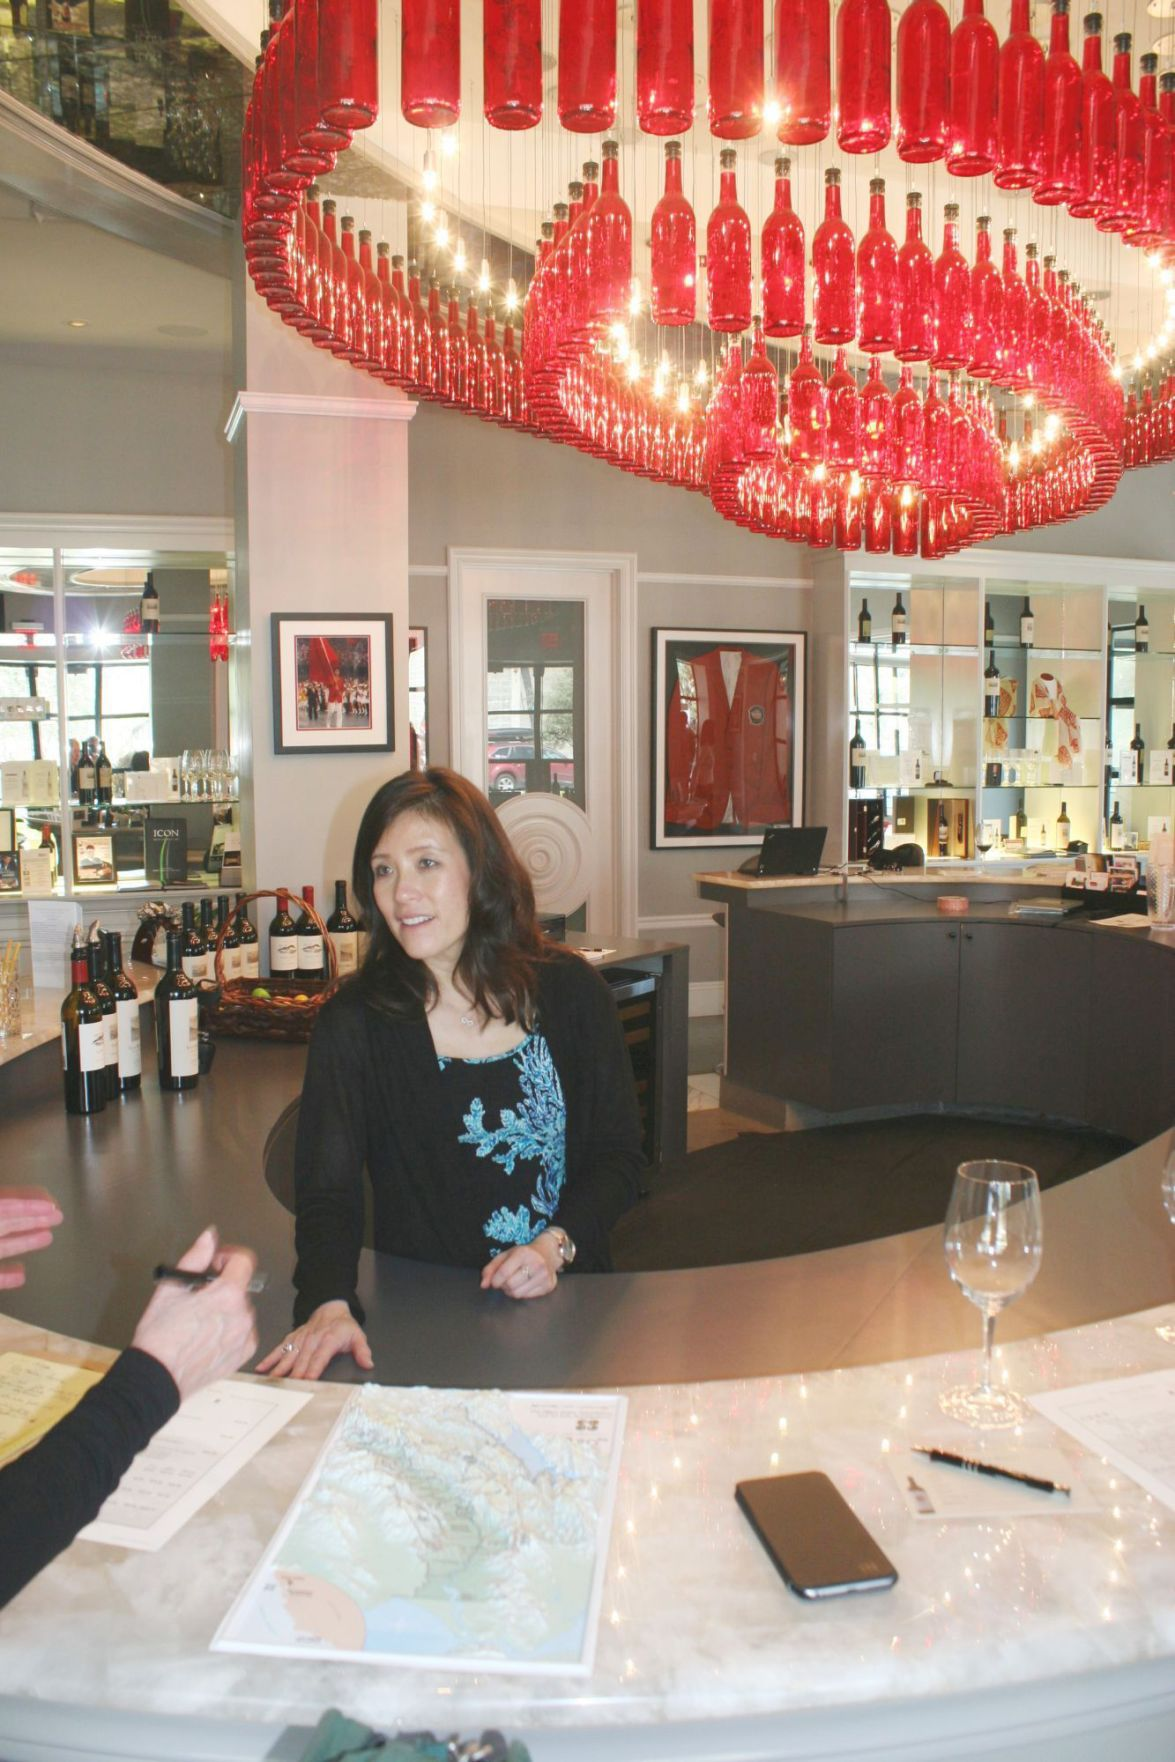 Yao Family Wines' Anna Egan